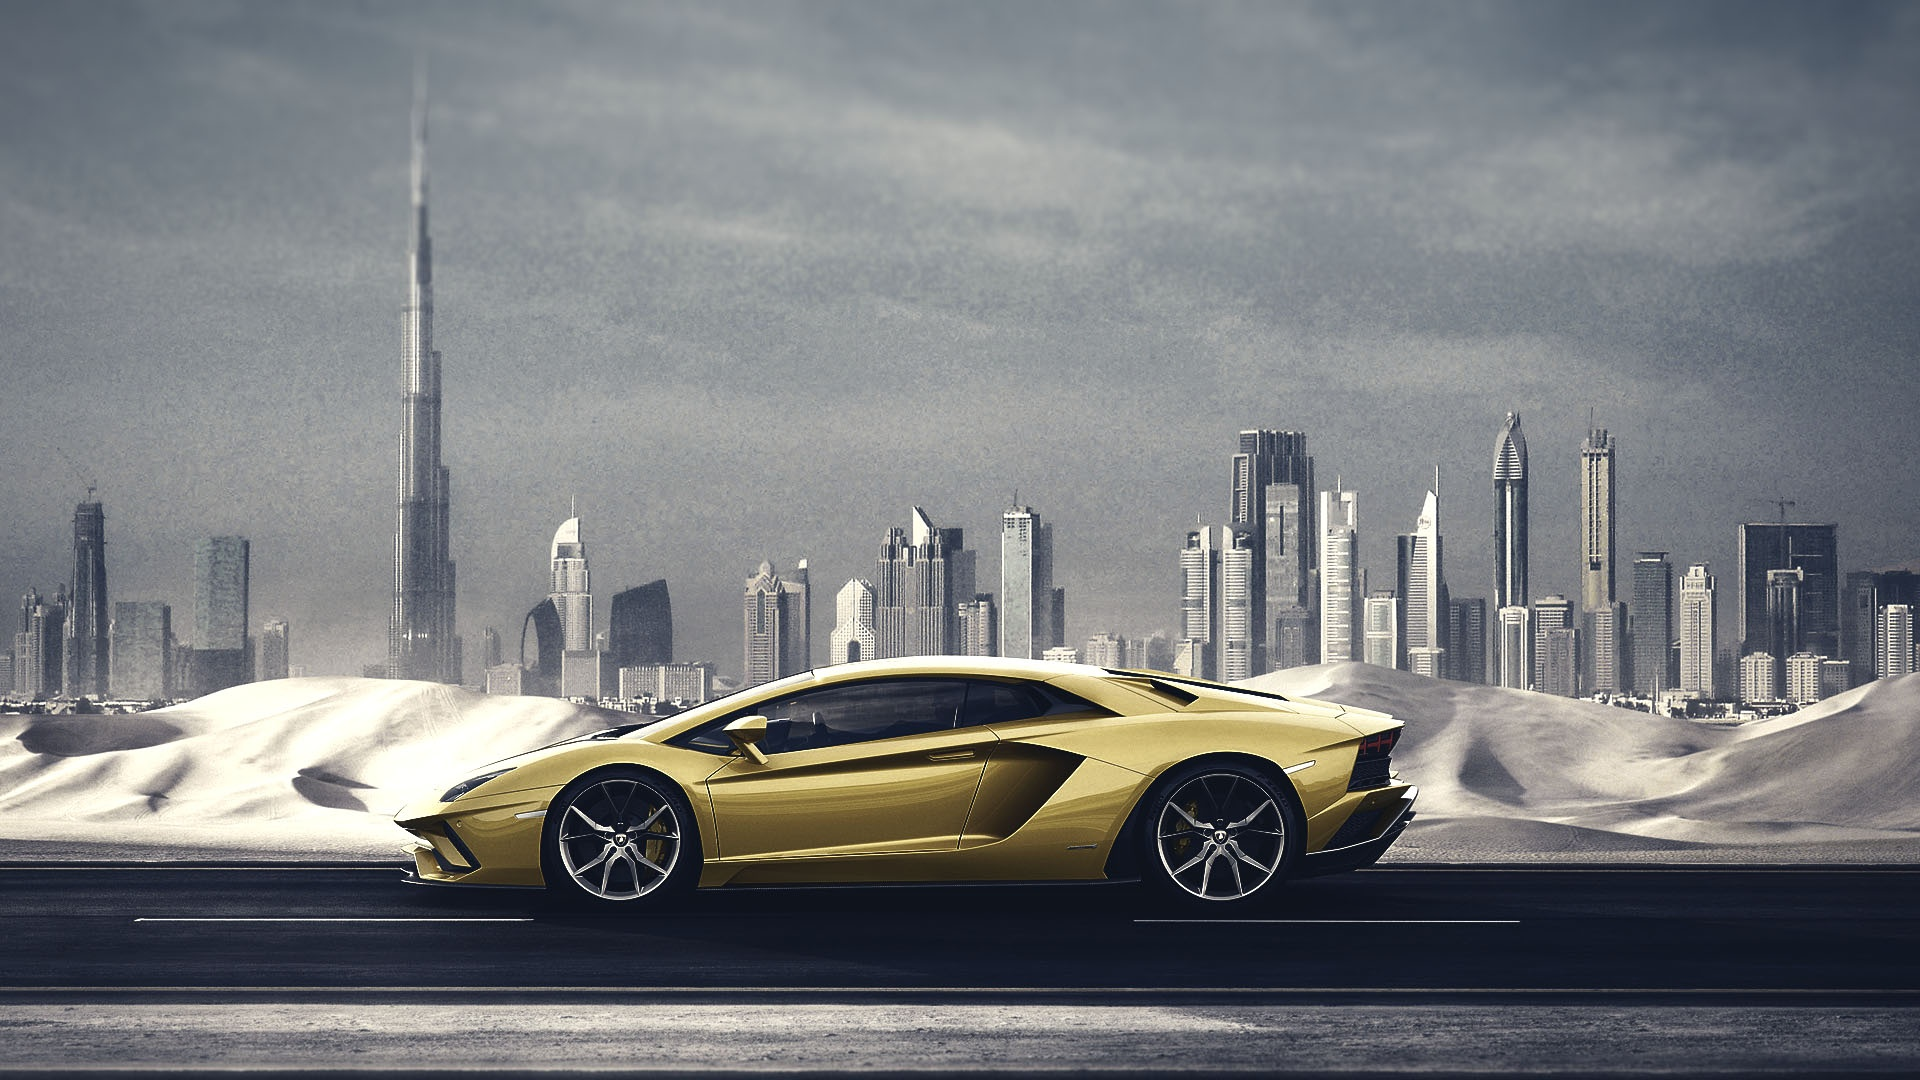 Lamborghini wallpaper desktop background